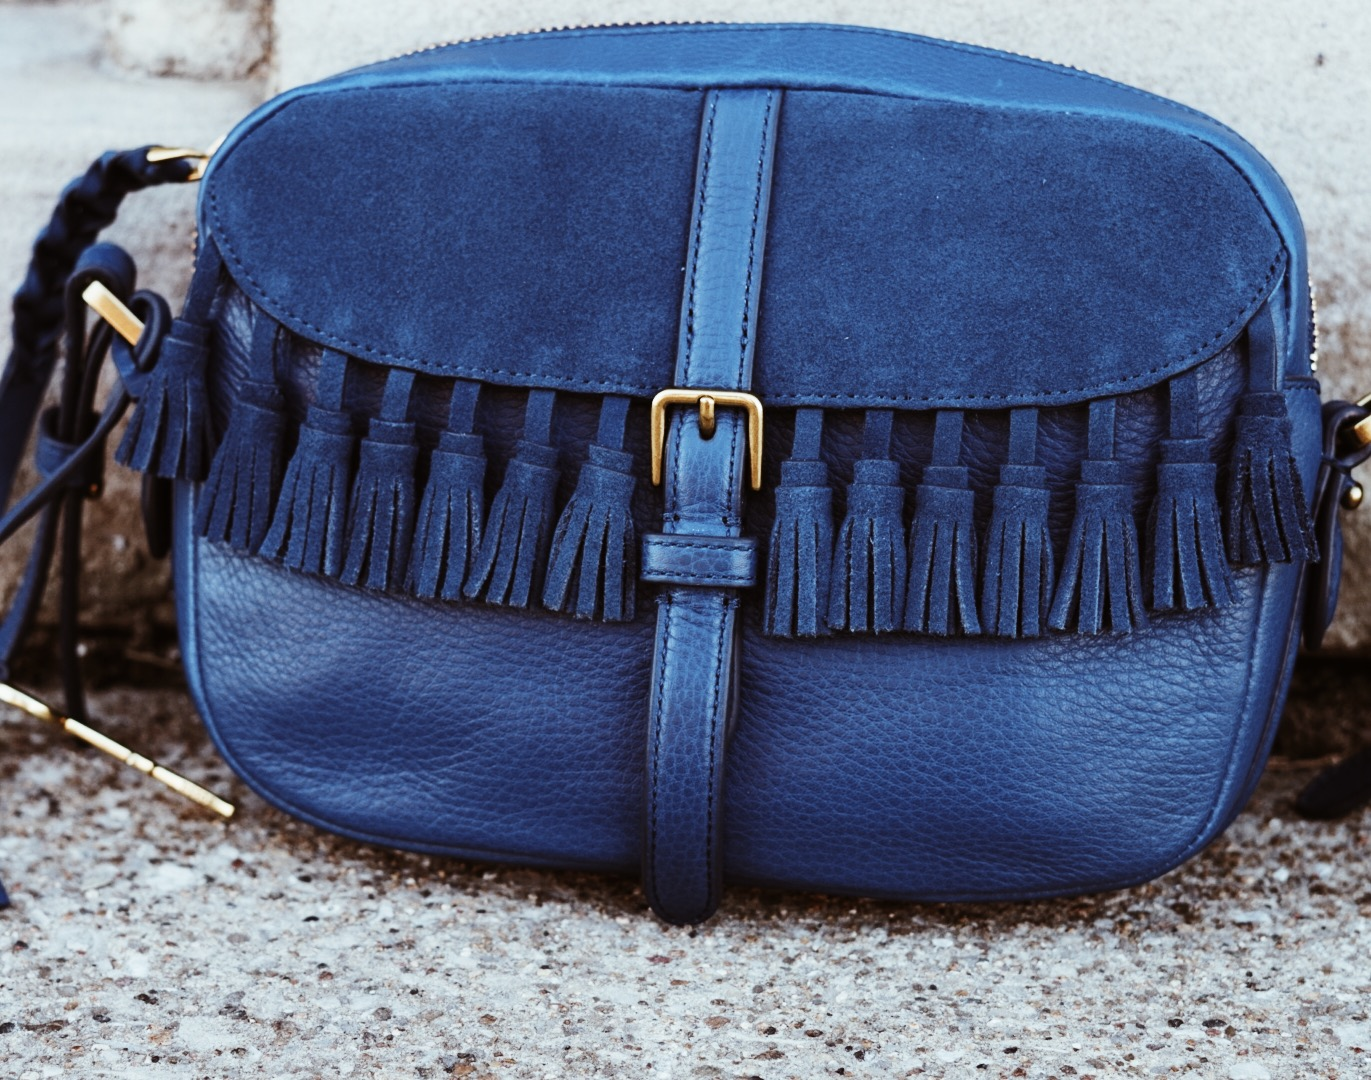 The tassel details on the bag are the perfect touch for me, a definite go to in my wardrobe.